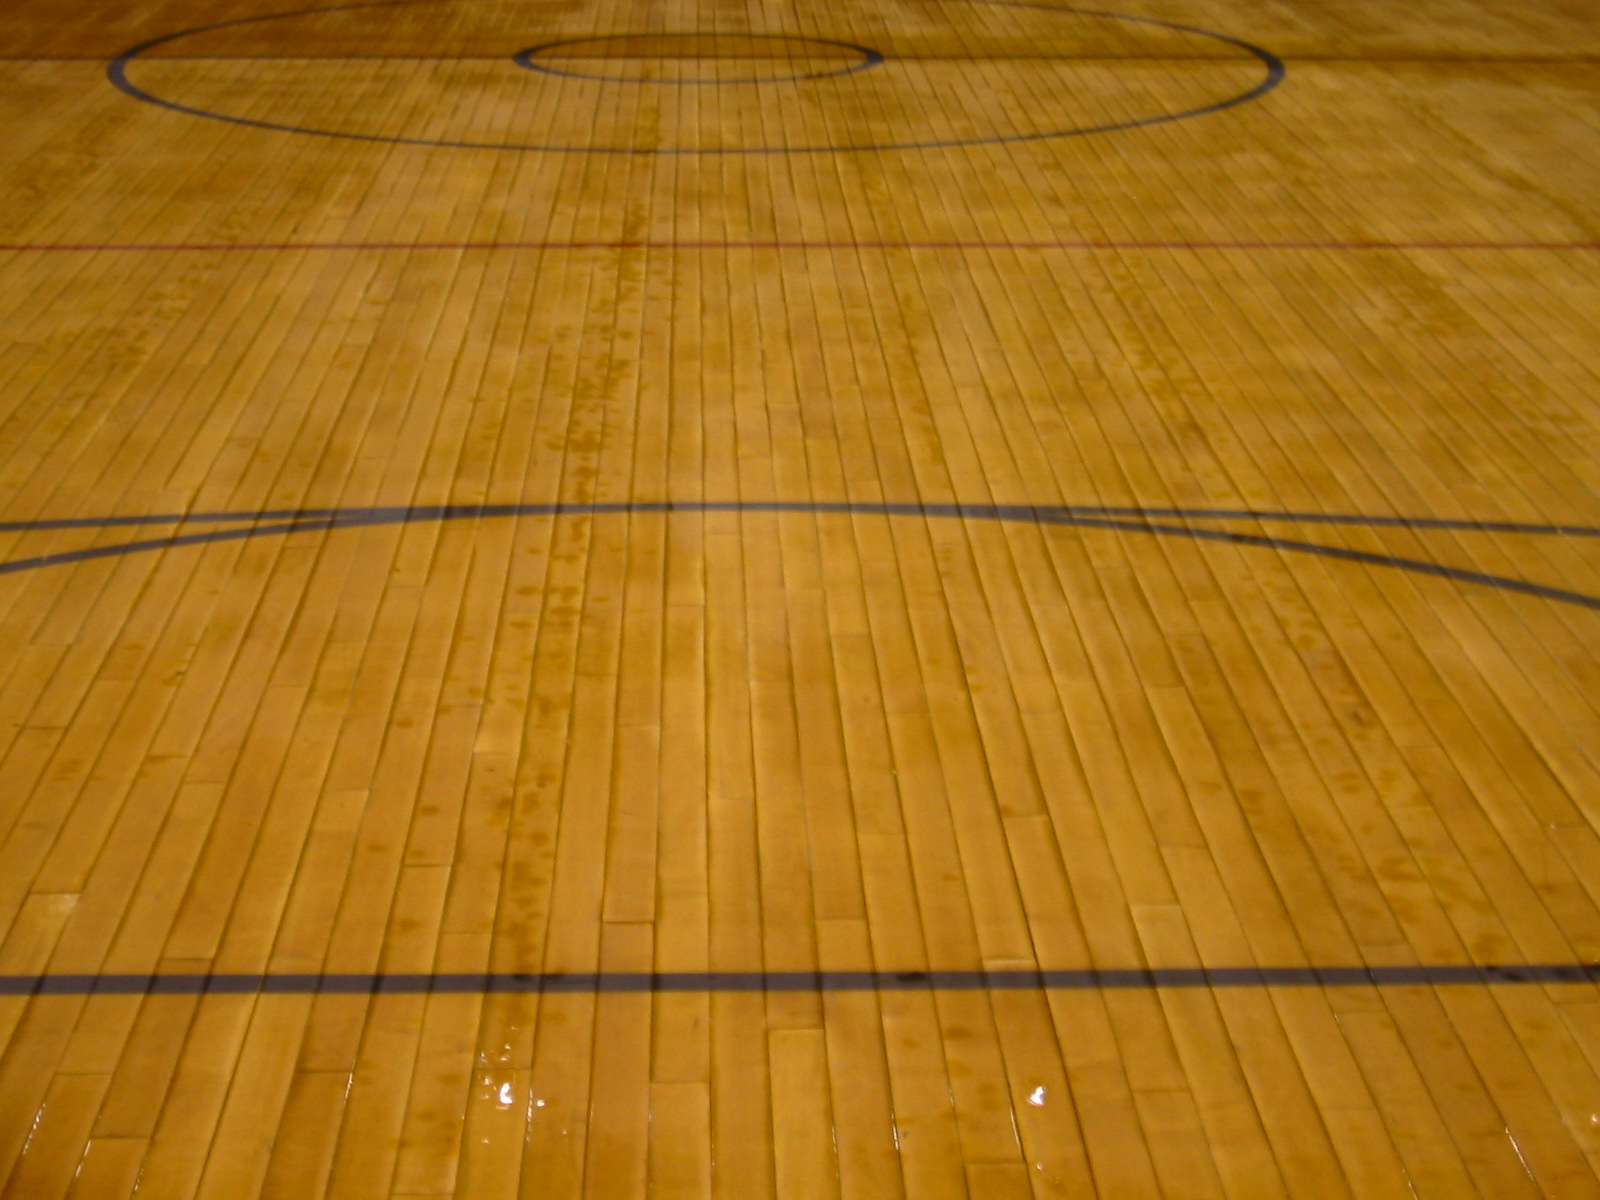 Boone county family ymca november 2010 for Gym flooring